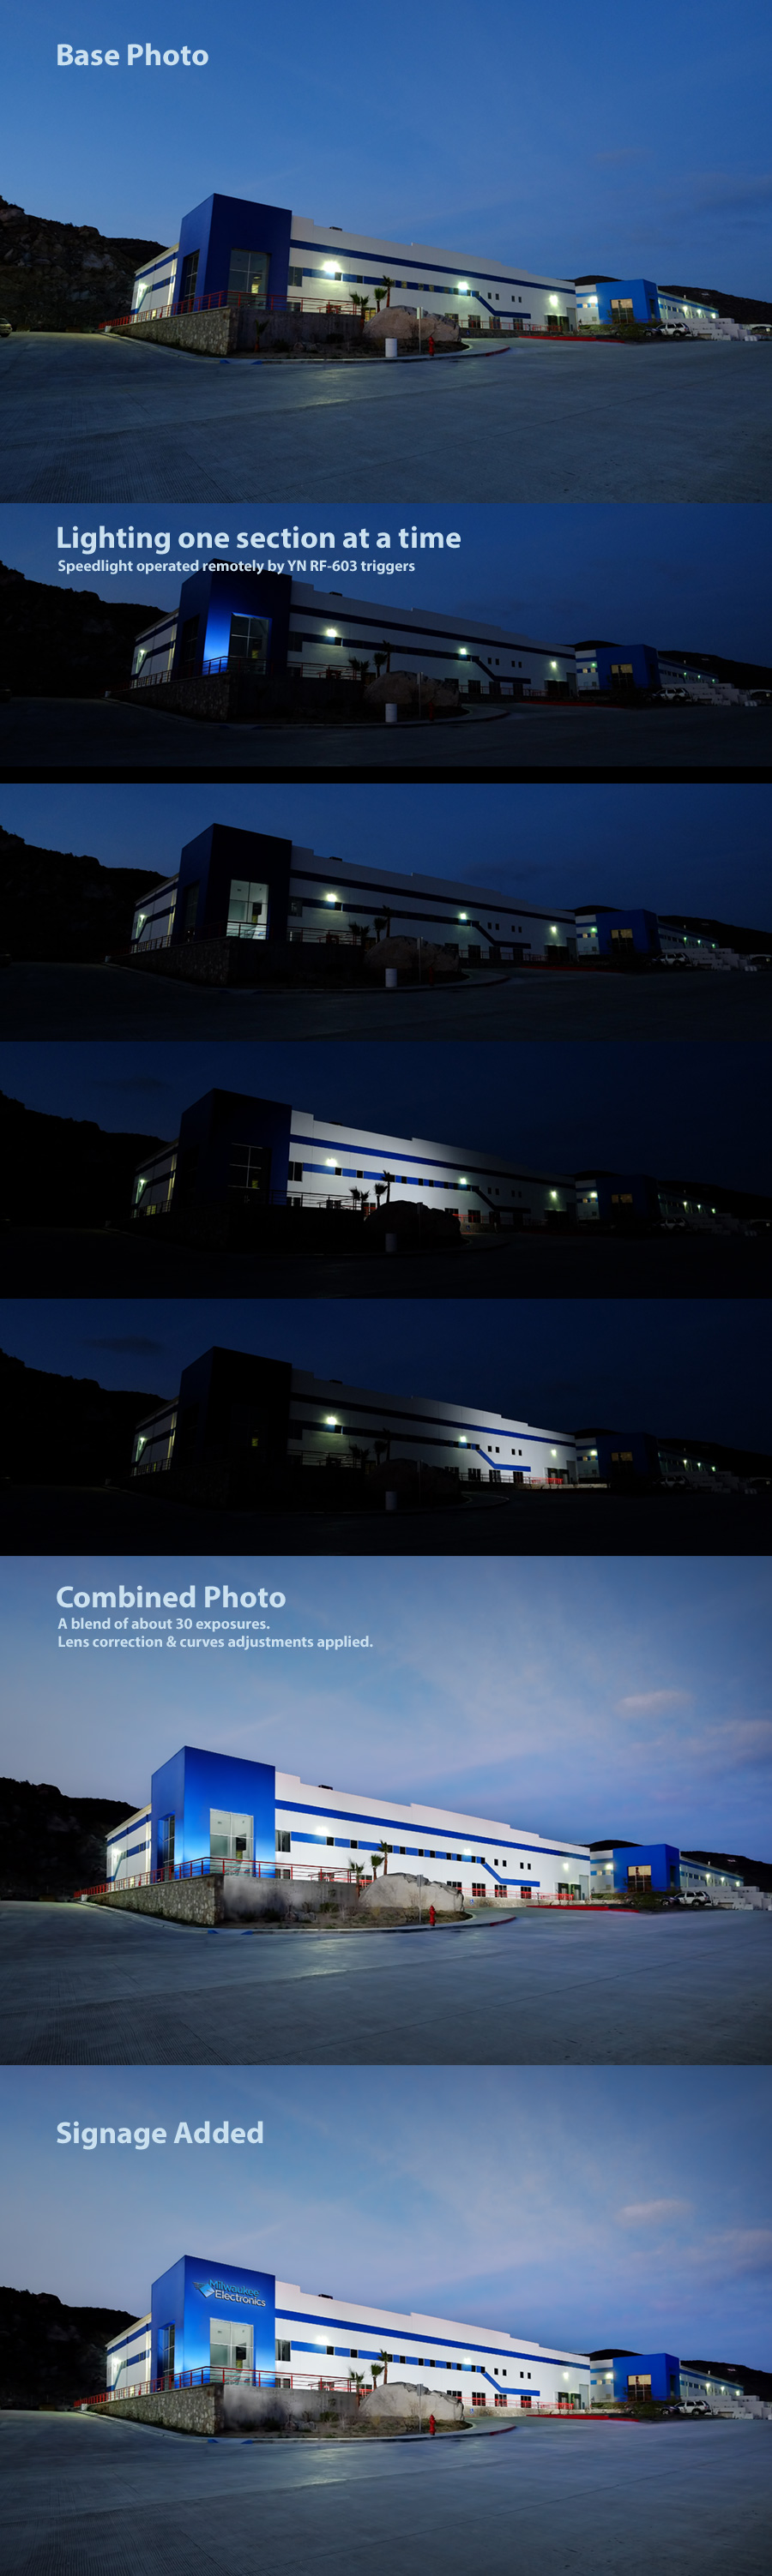 Lighting a large building with one speedlight - Base image is Fujifilm XE-1, Zeiss Touit 12mm, ISO 800, f/5.6, 1/4.